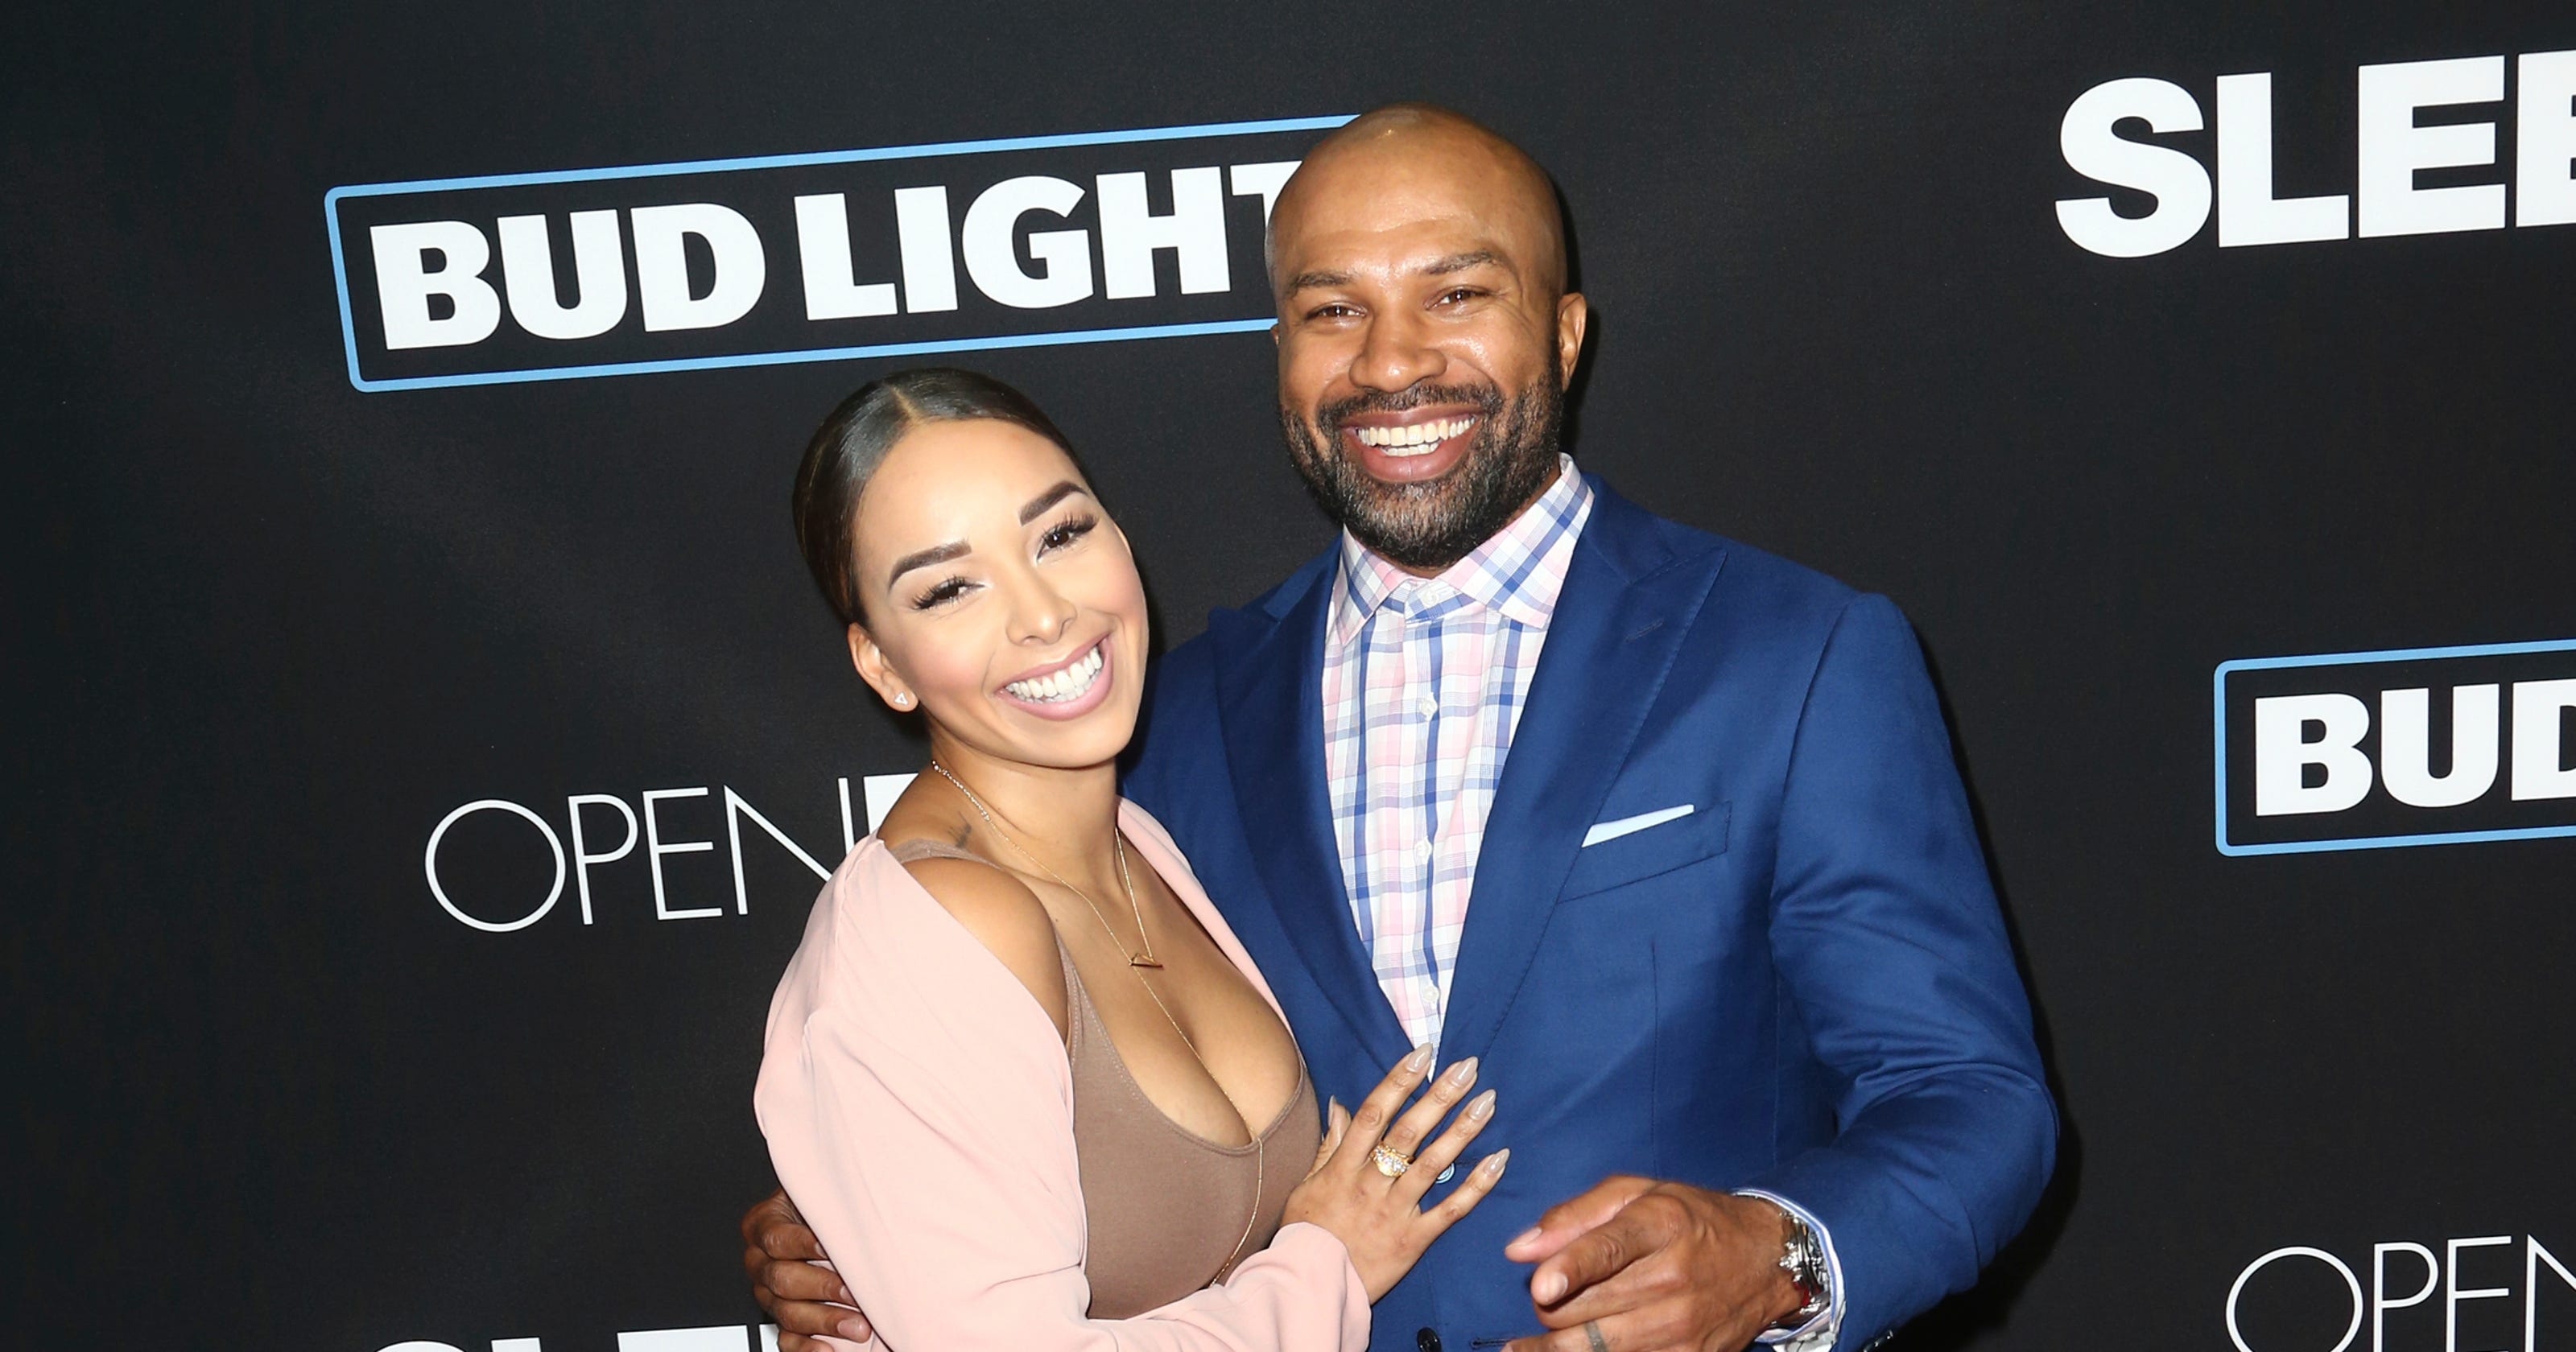 Derek Fisher engaged to ex-wife of former Lakers teammate